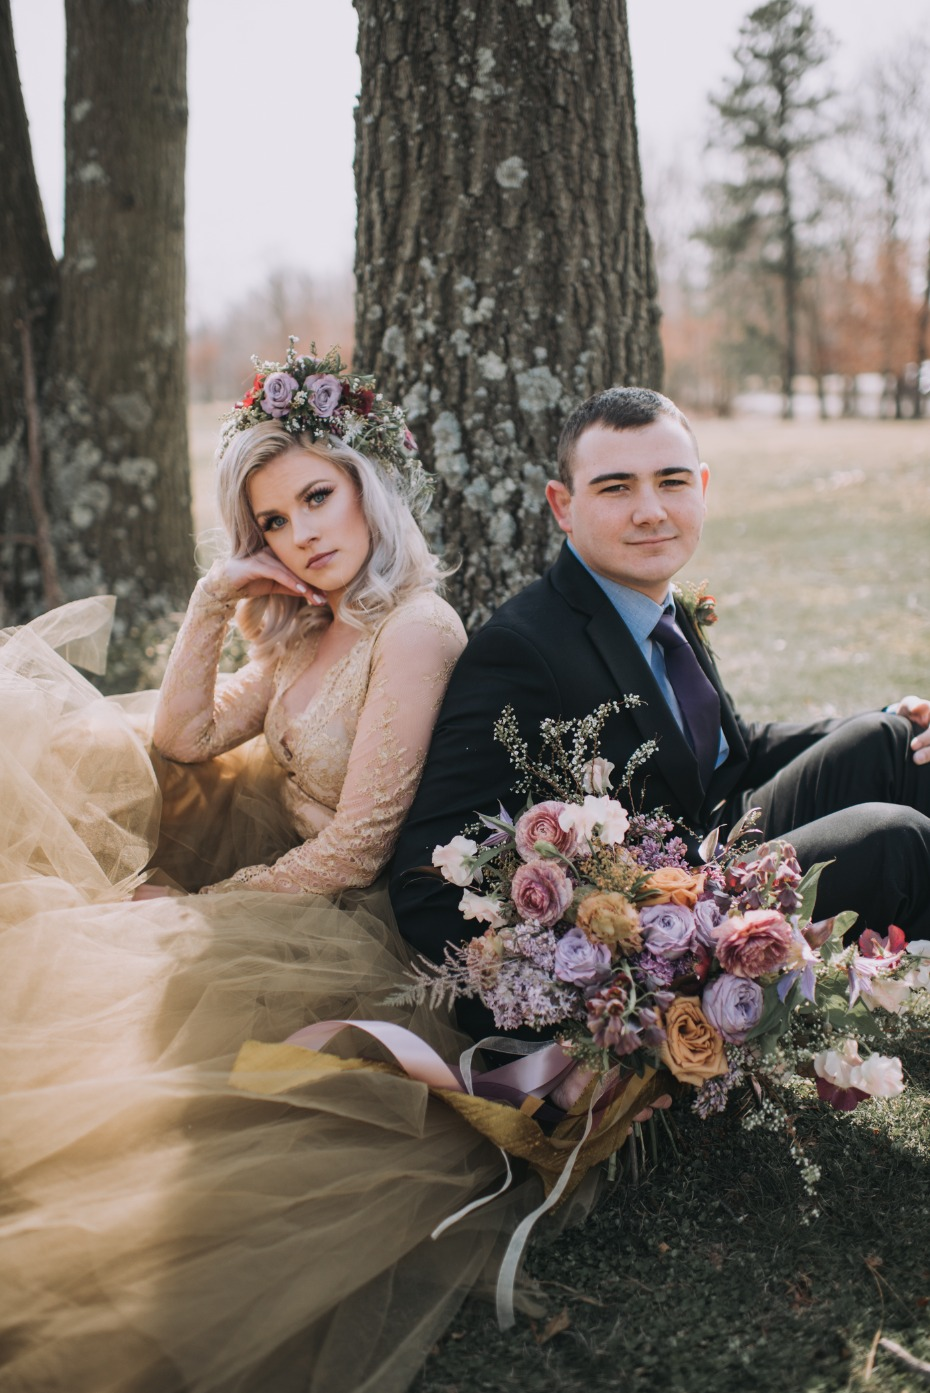 Springtime wedding inspiration in gold and lavender